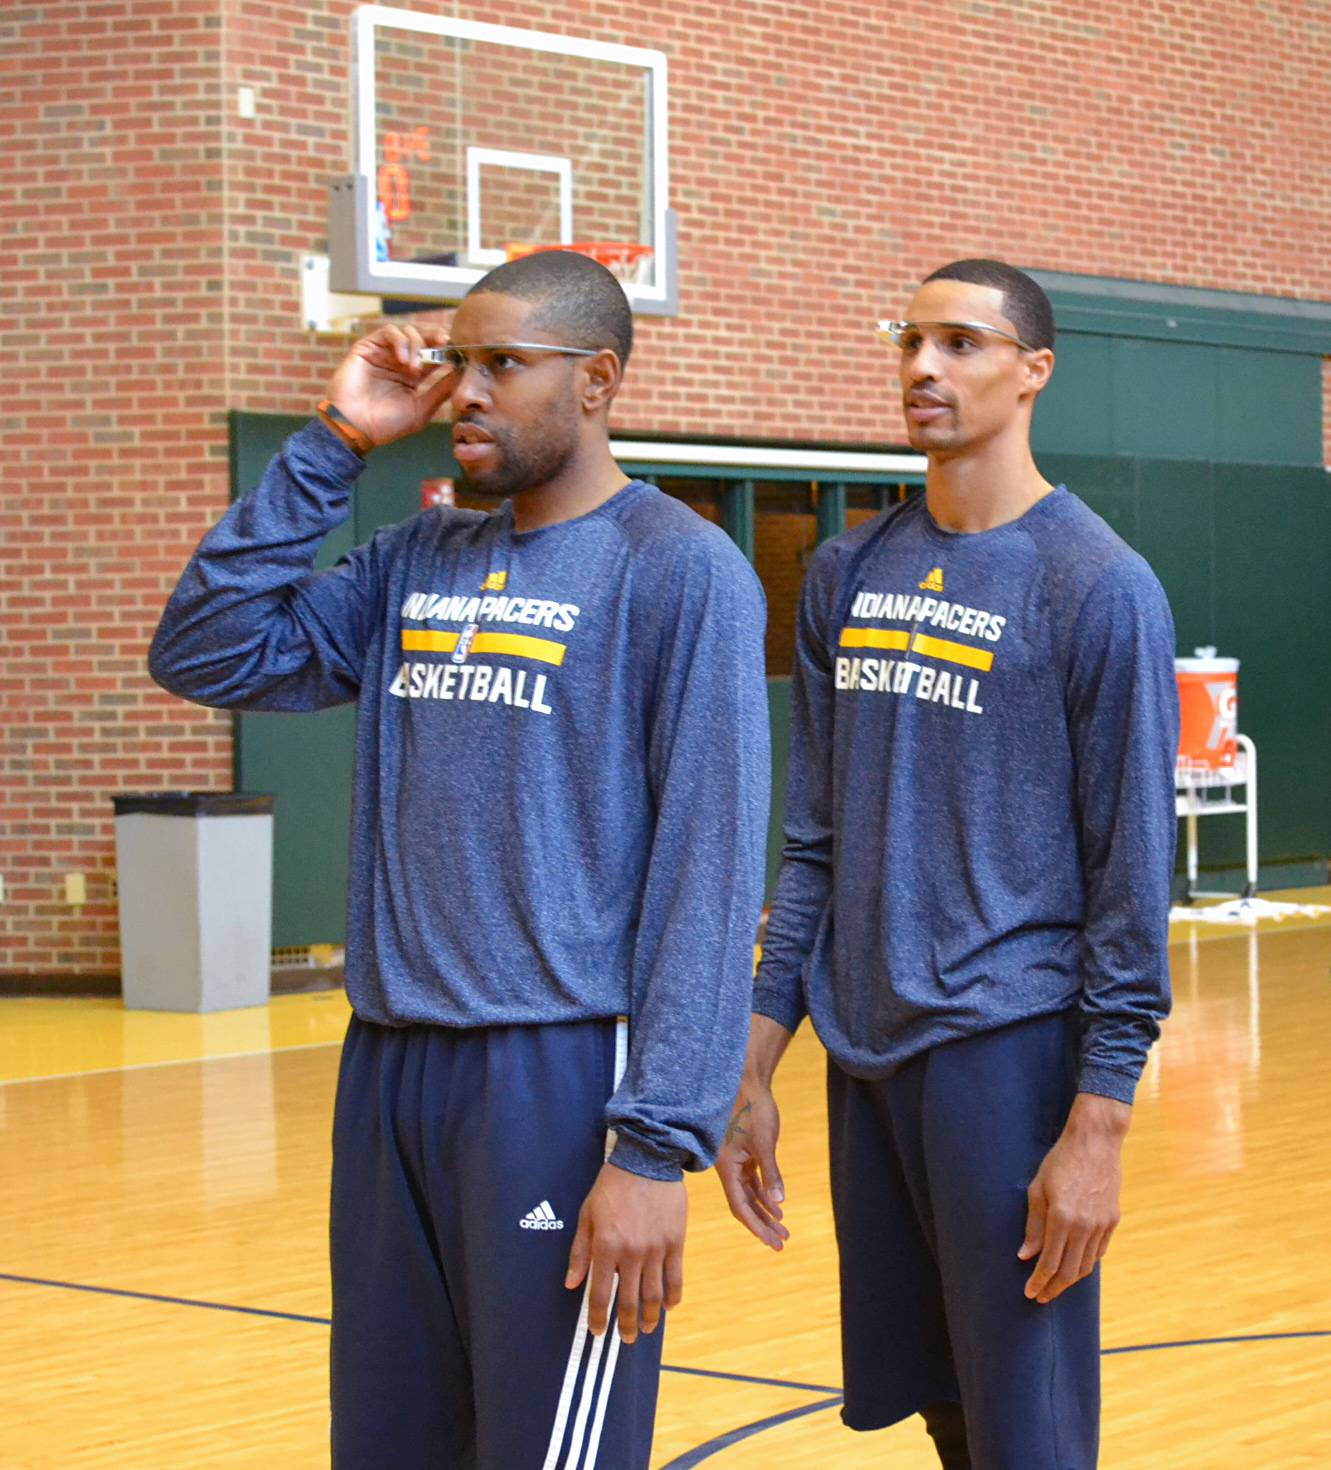 In this March 25, 2014 photo provided by Pacers.com, Indiana Pacers basketball players C.J. Watson, left, George Hill, center, and Lavoy Allen, at right back to camera, wear Google glasses during practice at Bankers Life Fieldhouse in Indianapolis. Google Glass is slowly becoming more common in sports as teams and broadcasters try to bring fans closer to the action.